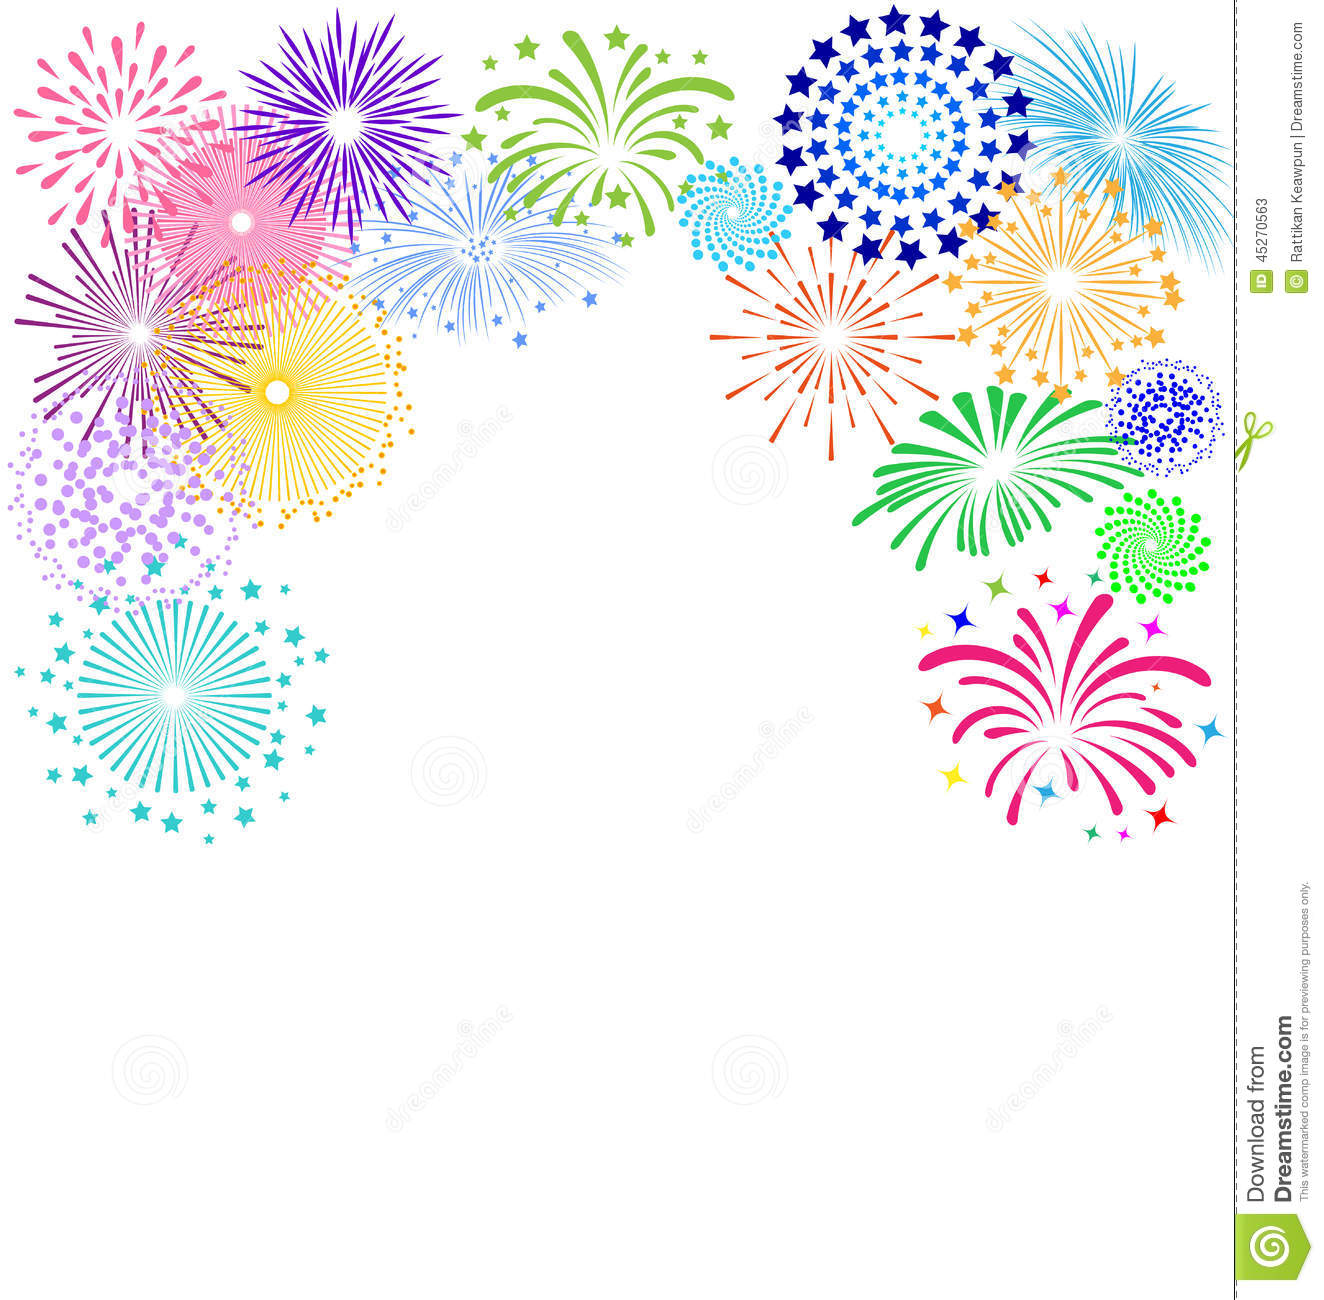 Colorful fireworks frame on white background for celebration party